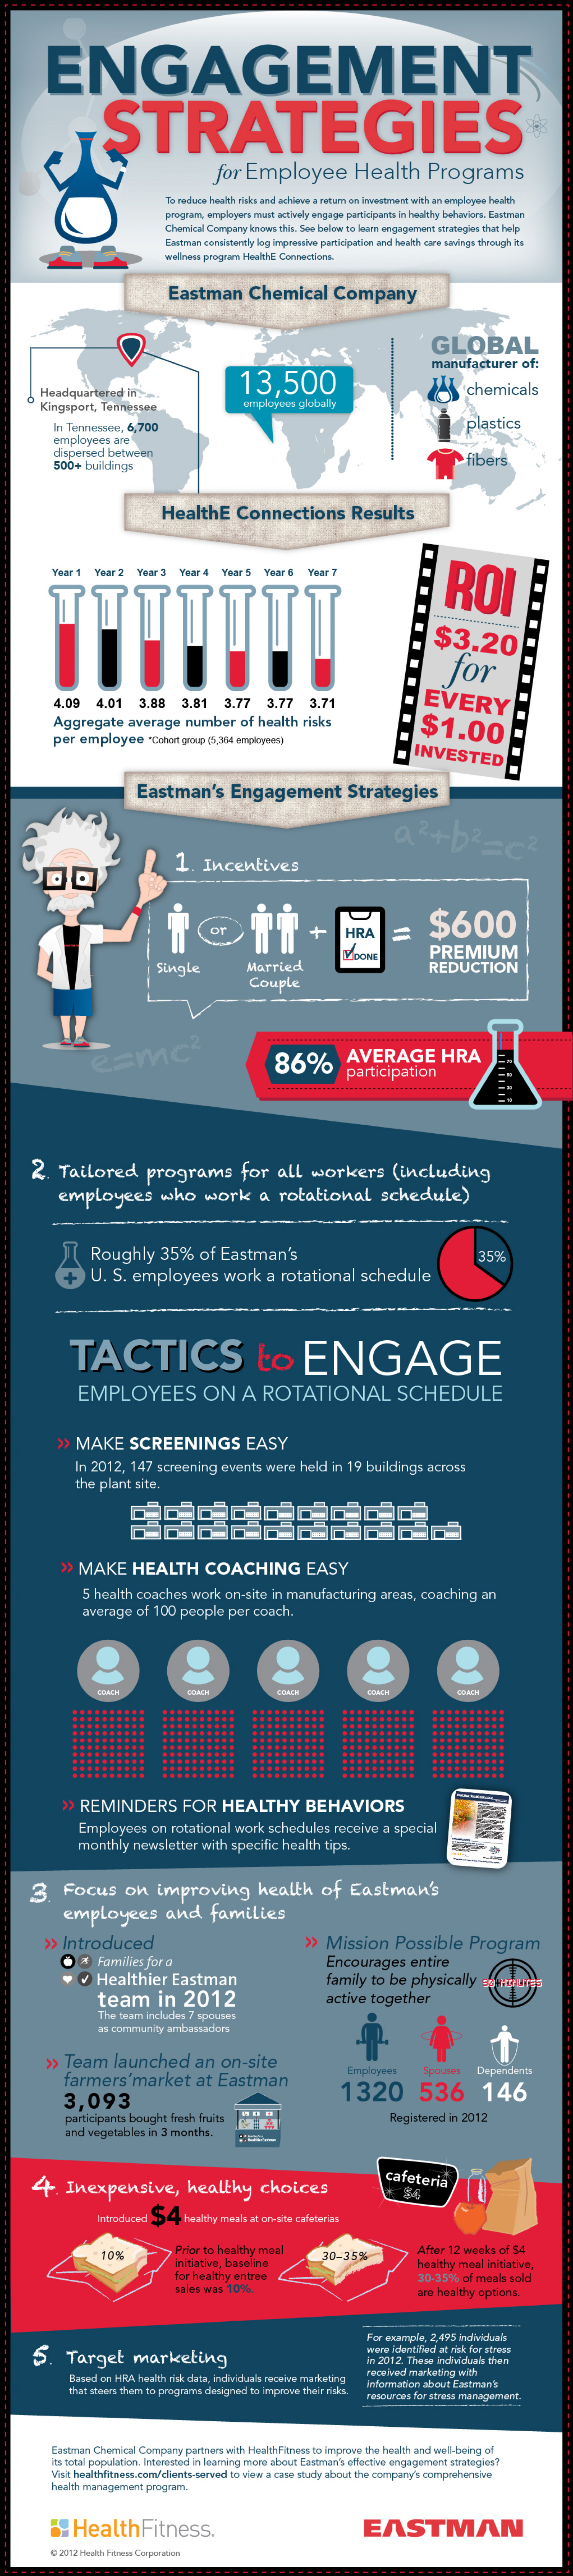 Engagement Strategies for Employee Health Programs Infographic